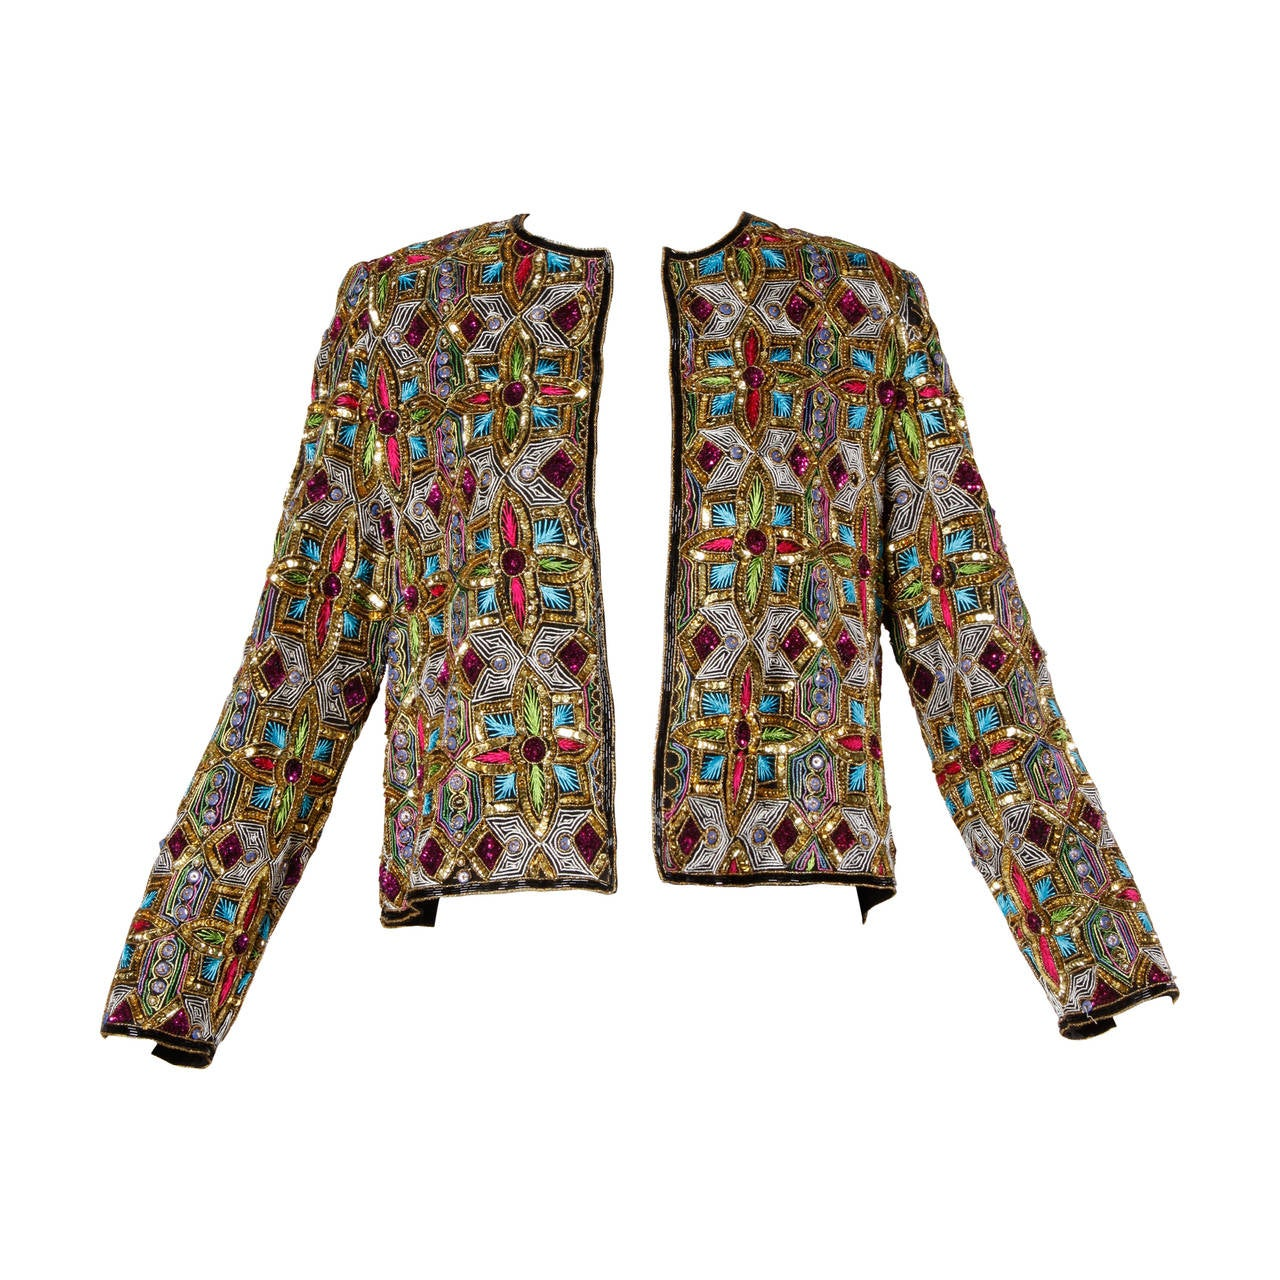 Vintage Stained Glass Sequin + Beaded Trophy Jacket 1